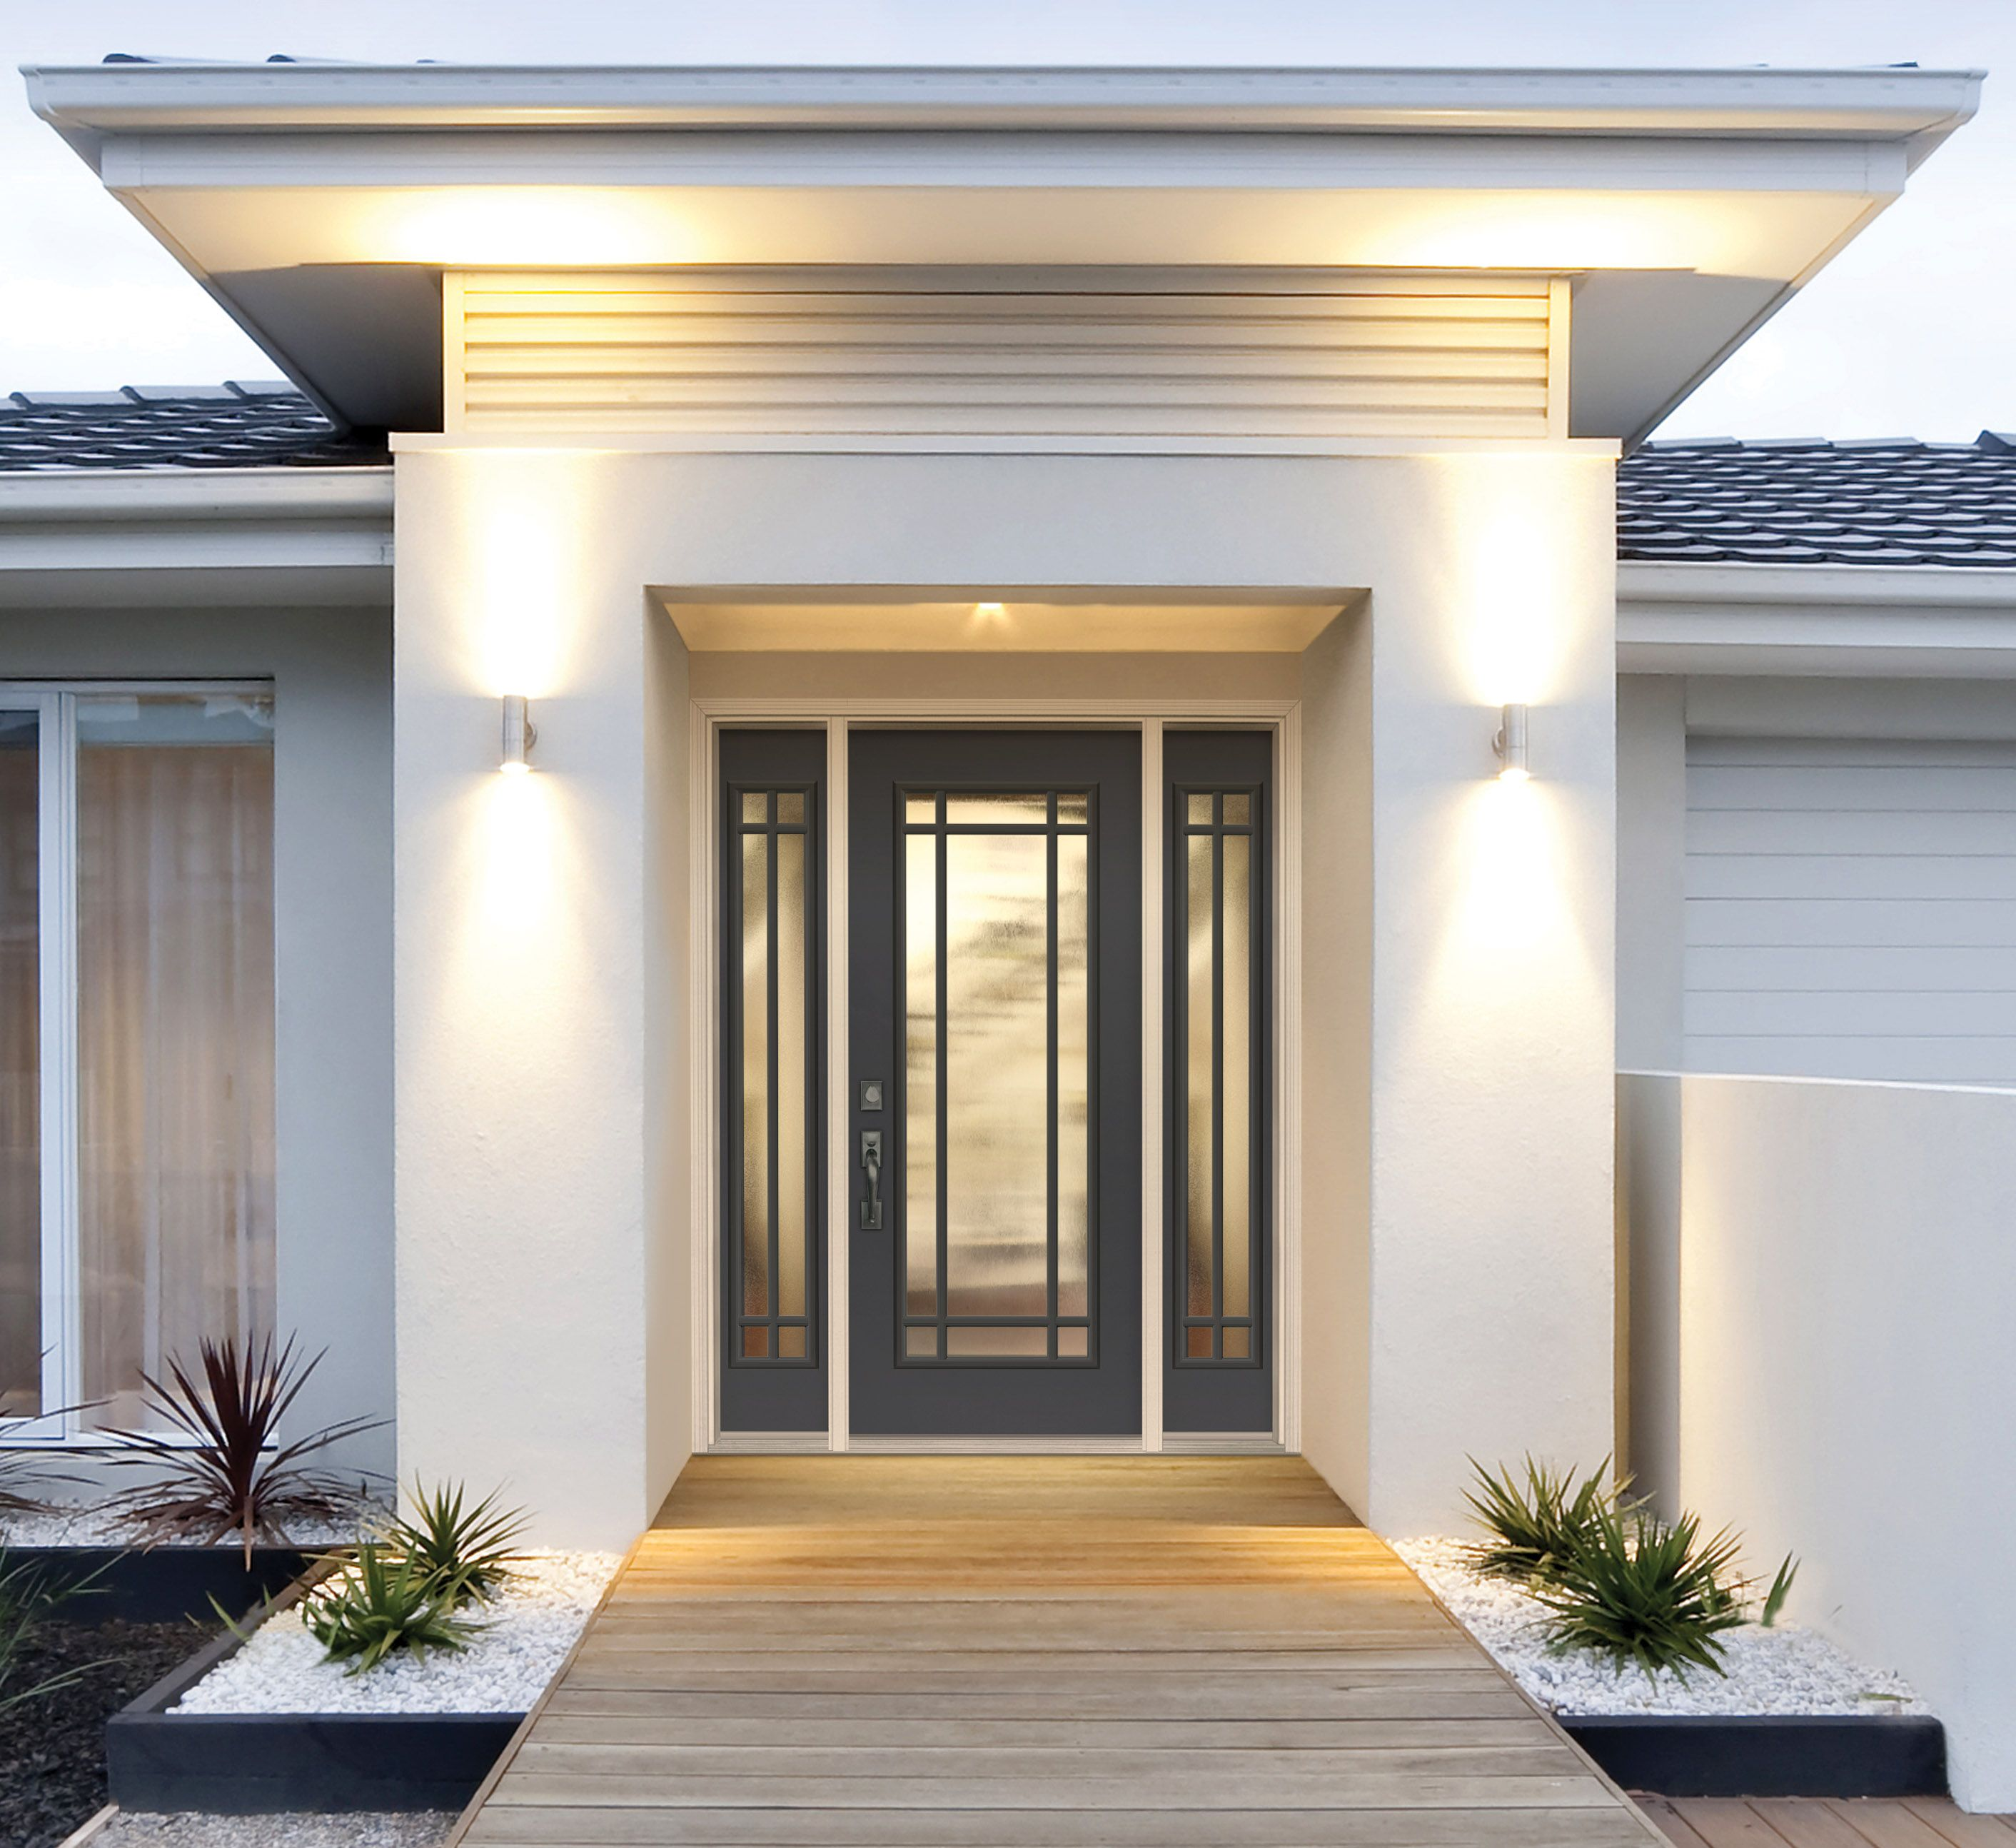 The Clean Lines Of The Belleville Smooth Door With Applied 9 Lite